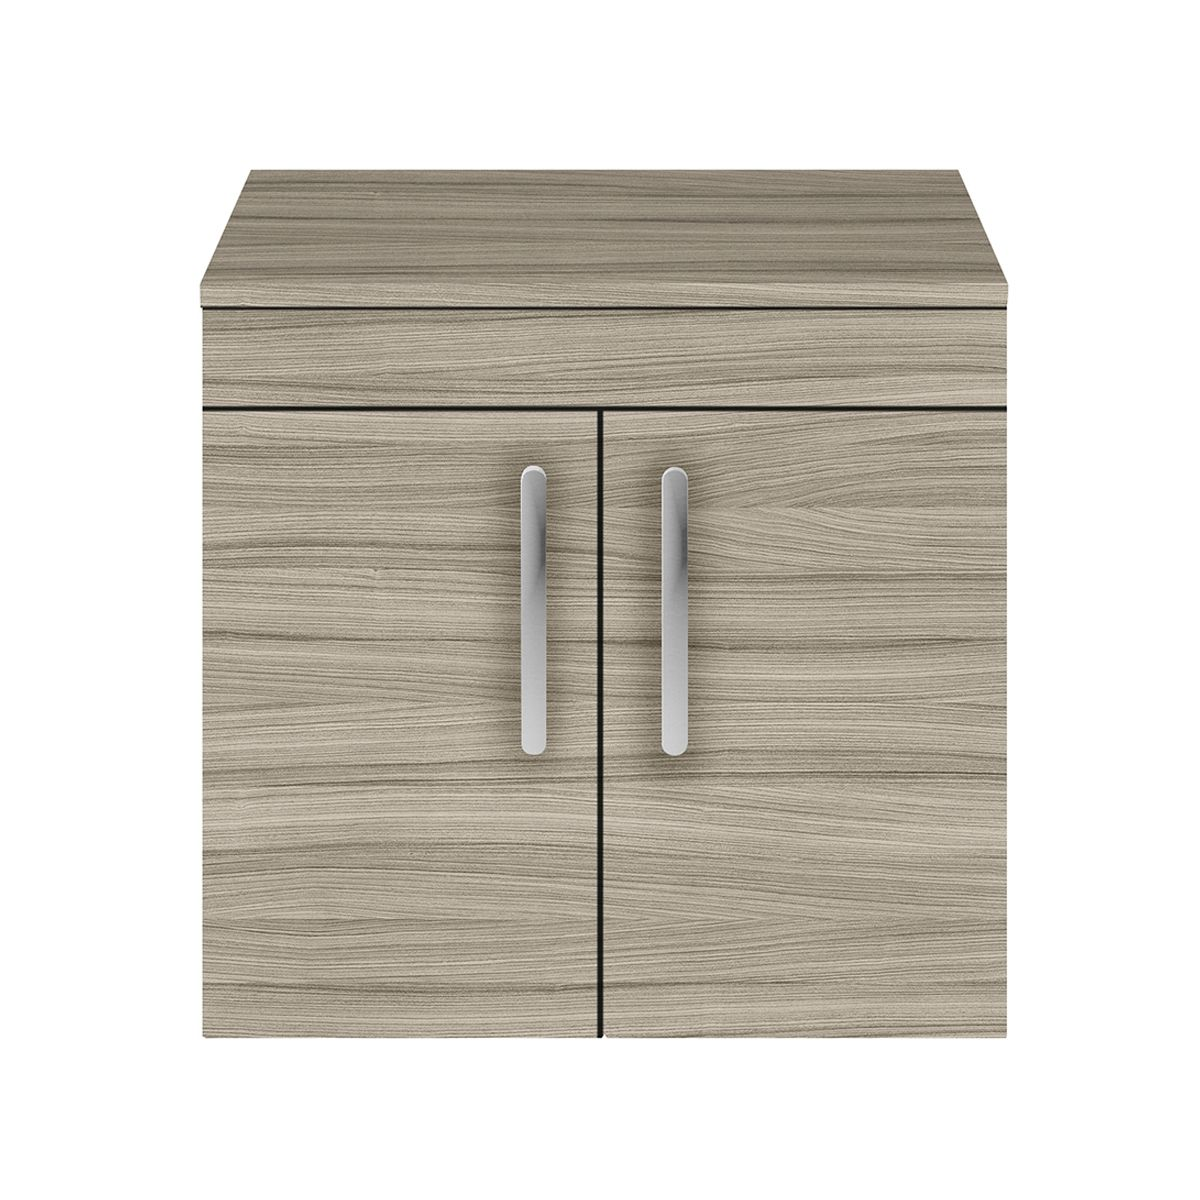 Nuie Athena Driftwood 2 Door Wall Hung Unit 600mm with Worktop